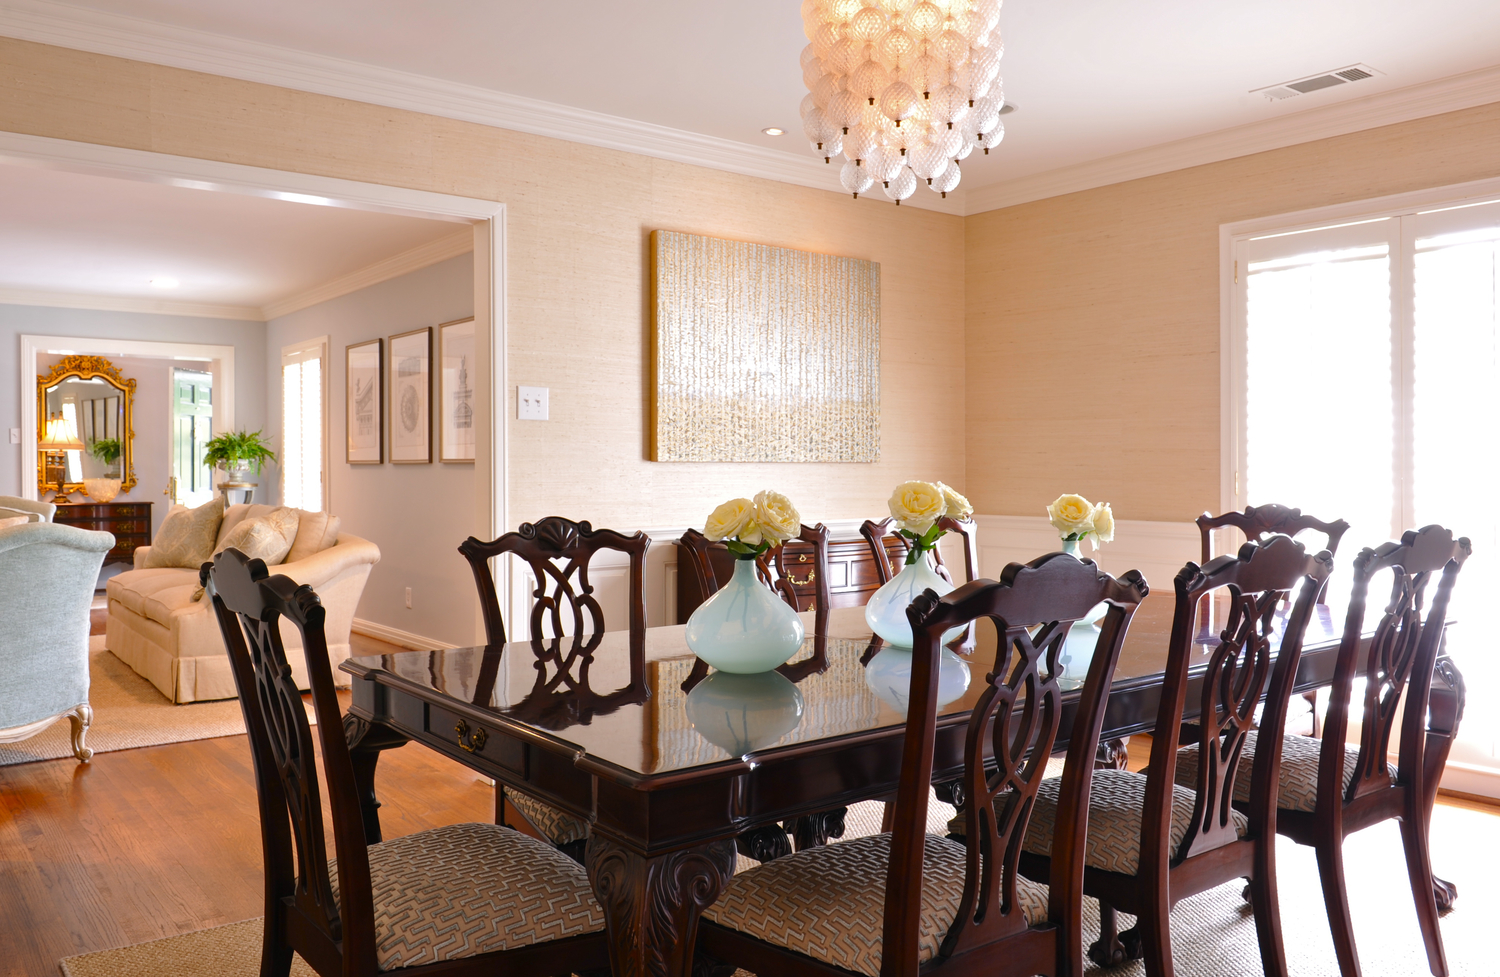 KST Design Is A Full Service Interior Firm Based In Dallas TX